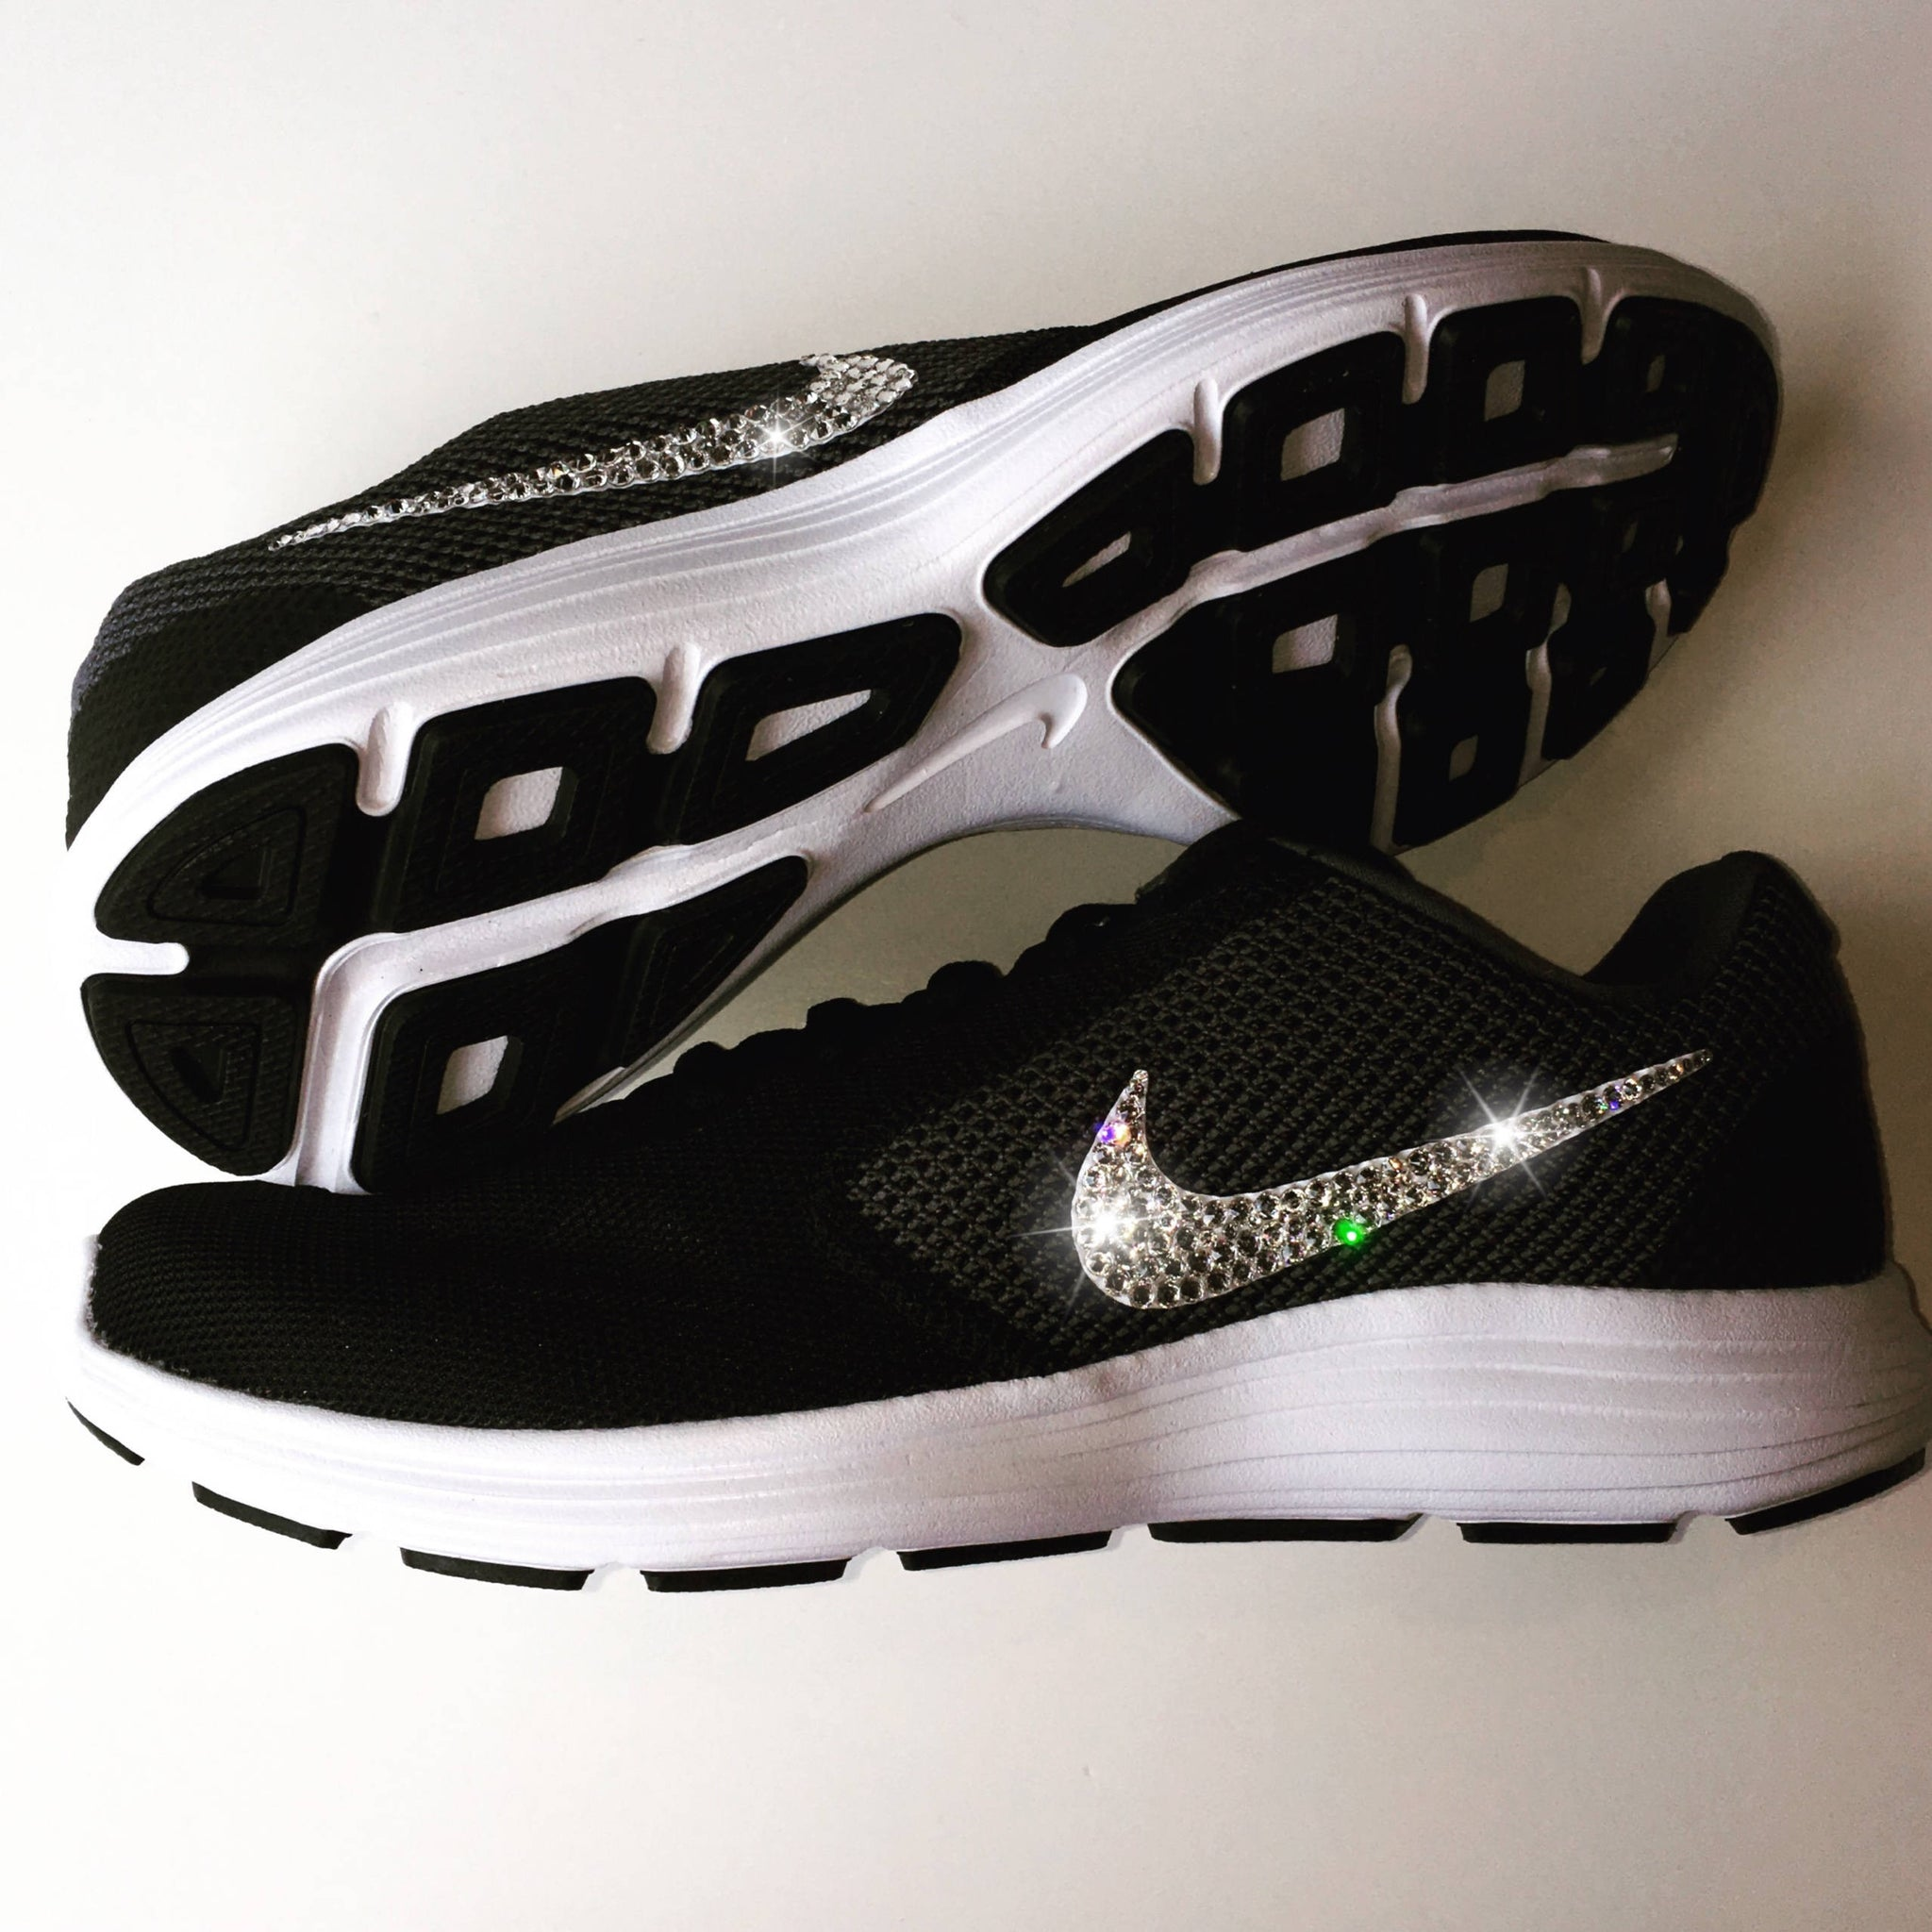 5b469ce7fdd Bling Nike Revolution 3 Shoes with Swarovski Crystals   Black   White    Bedazzled with Authentic ...